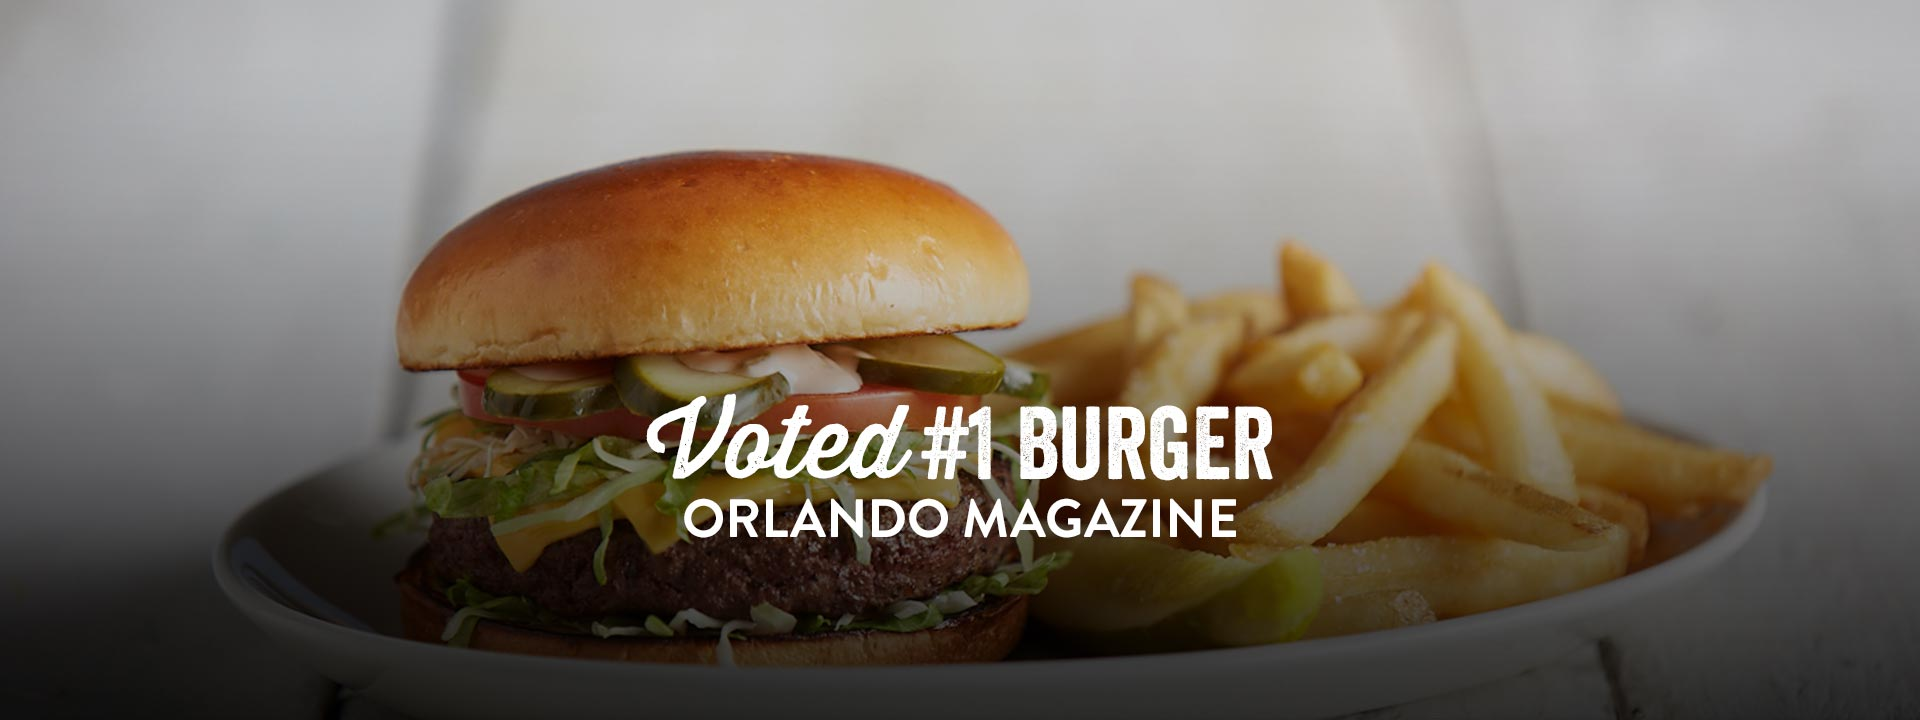 Hamburger and french fries with text: Voted 1 burger, Orlando magazine